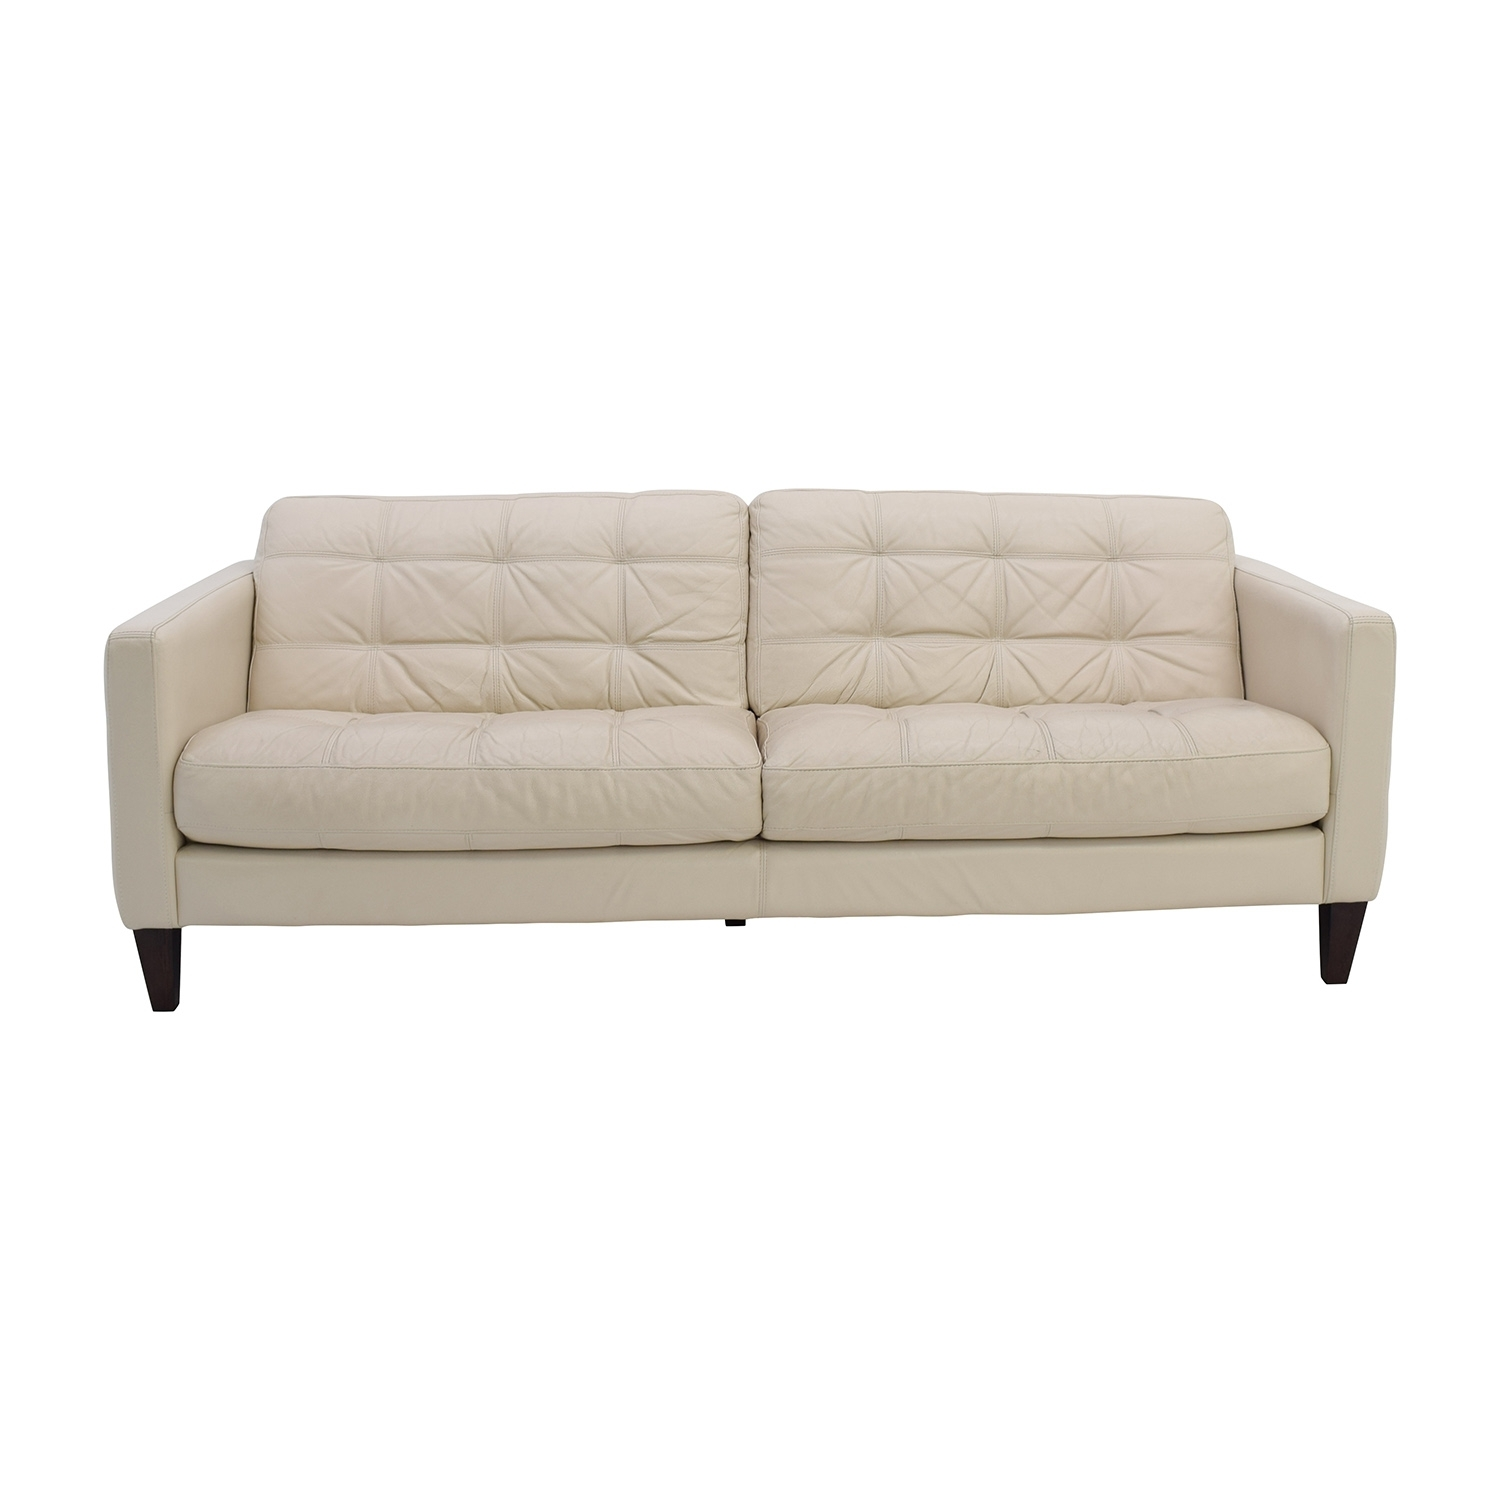 85% Off - Macy's Macy's Milan Pearl Leather Sofa / Sofas with regard to Macys Leather Sofas